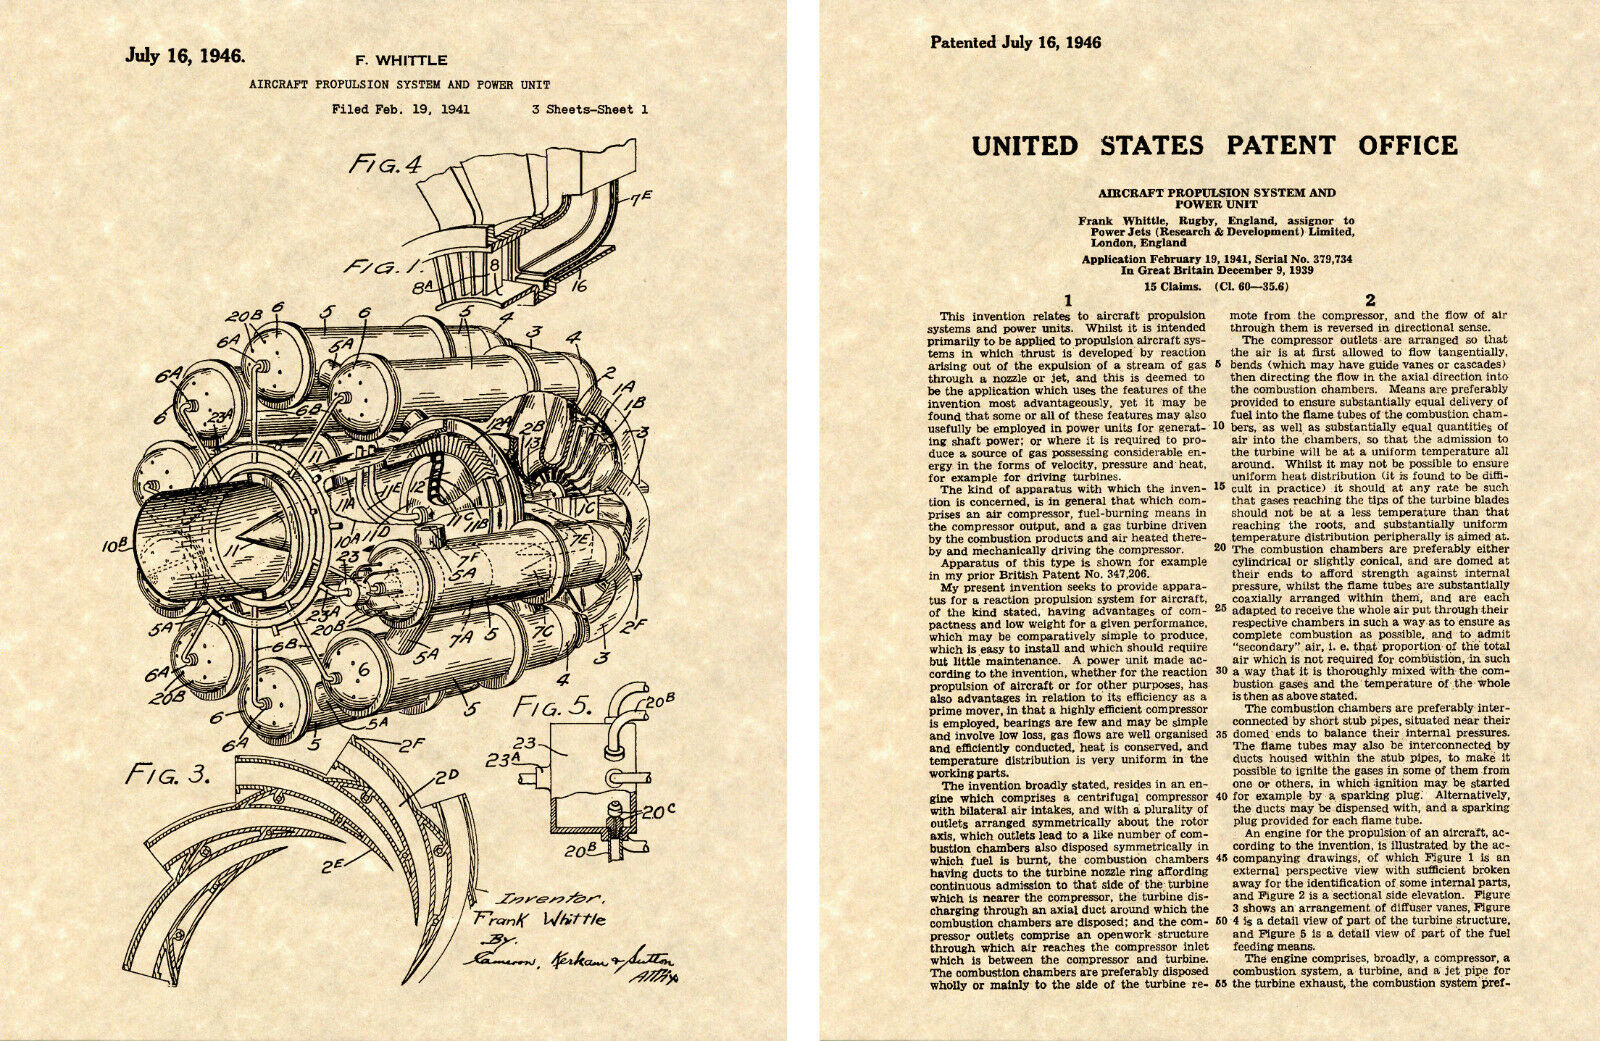 frank whittle jet engine thesis Sir frank whittle invented the jet propulsion engine, proposing the use of the gas turbine for jet propulsion in 1928 the sir frank whittle papers were donated to special collections and archives by eric falk general electric his thesis, future development of aircraft, was his fourth term project at the raf college.